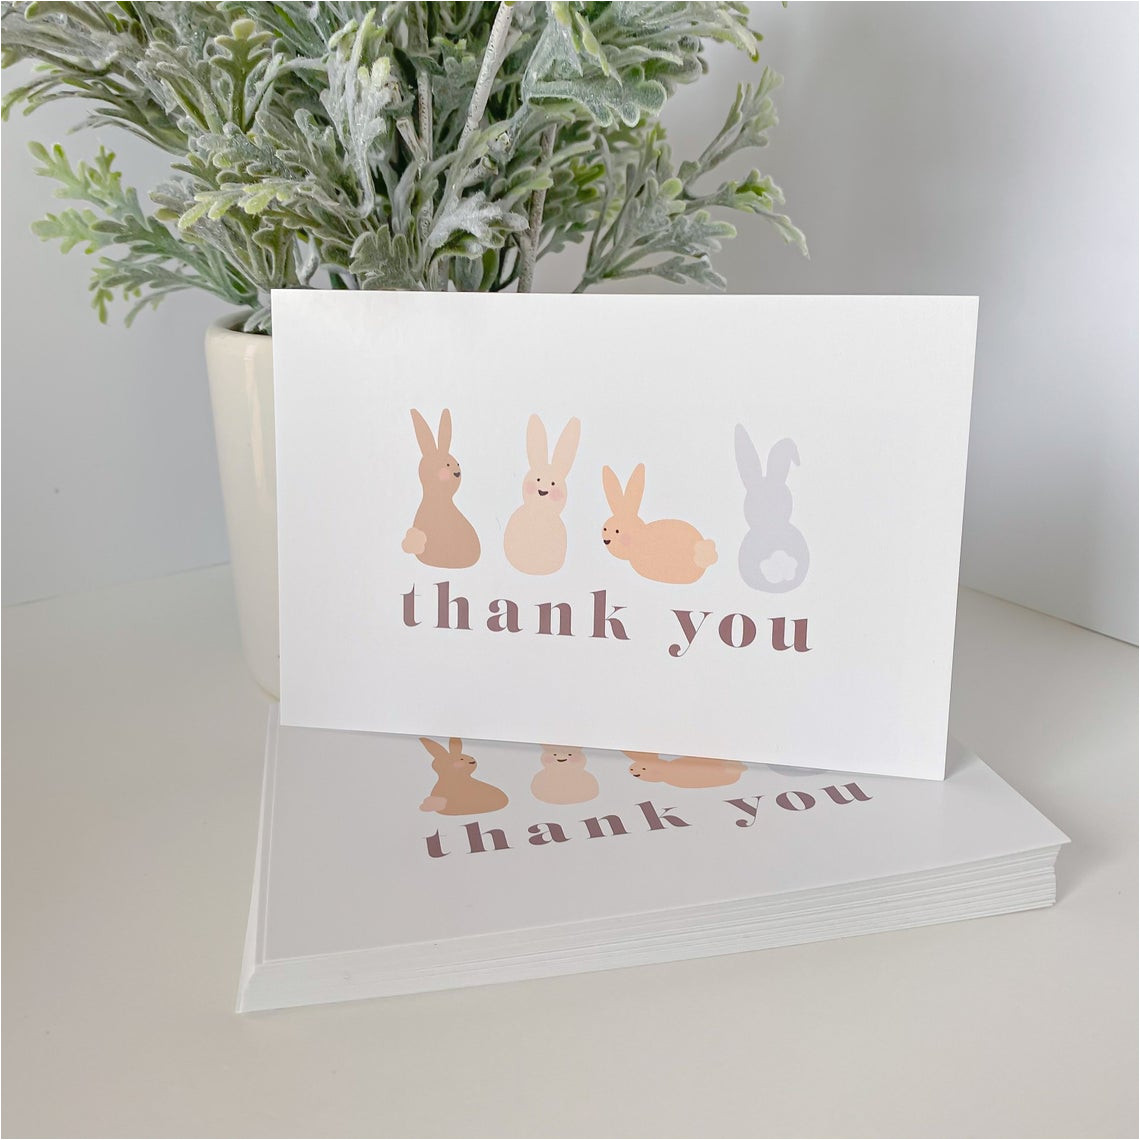 4 X 6 Thank You Cards 4 X 6 Thank You Cards Pack Of 25 order Cards